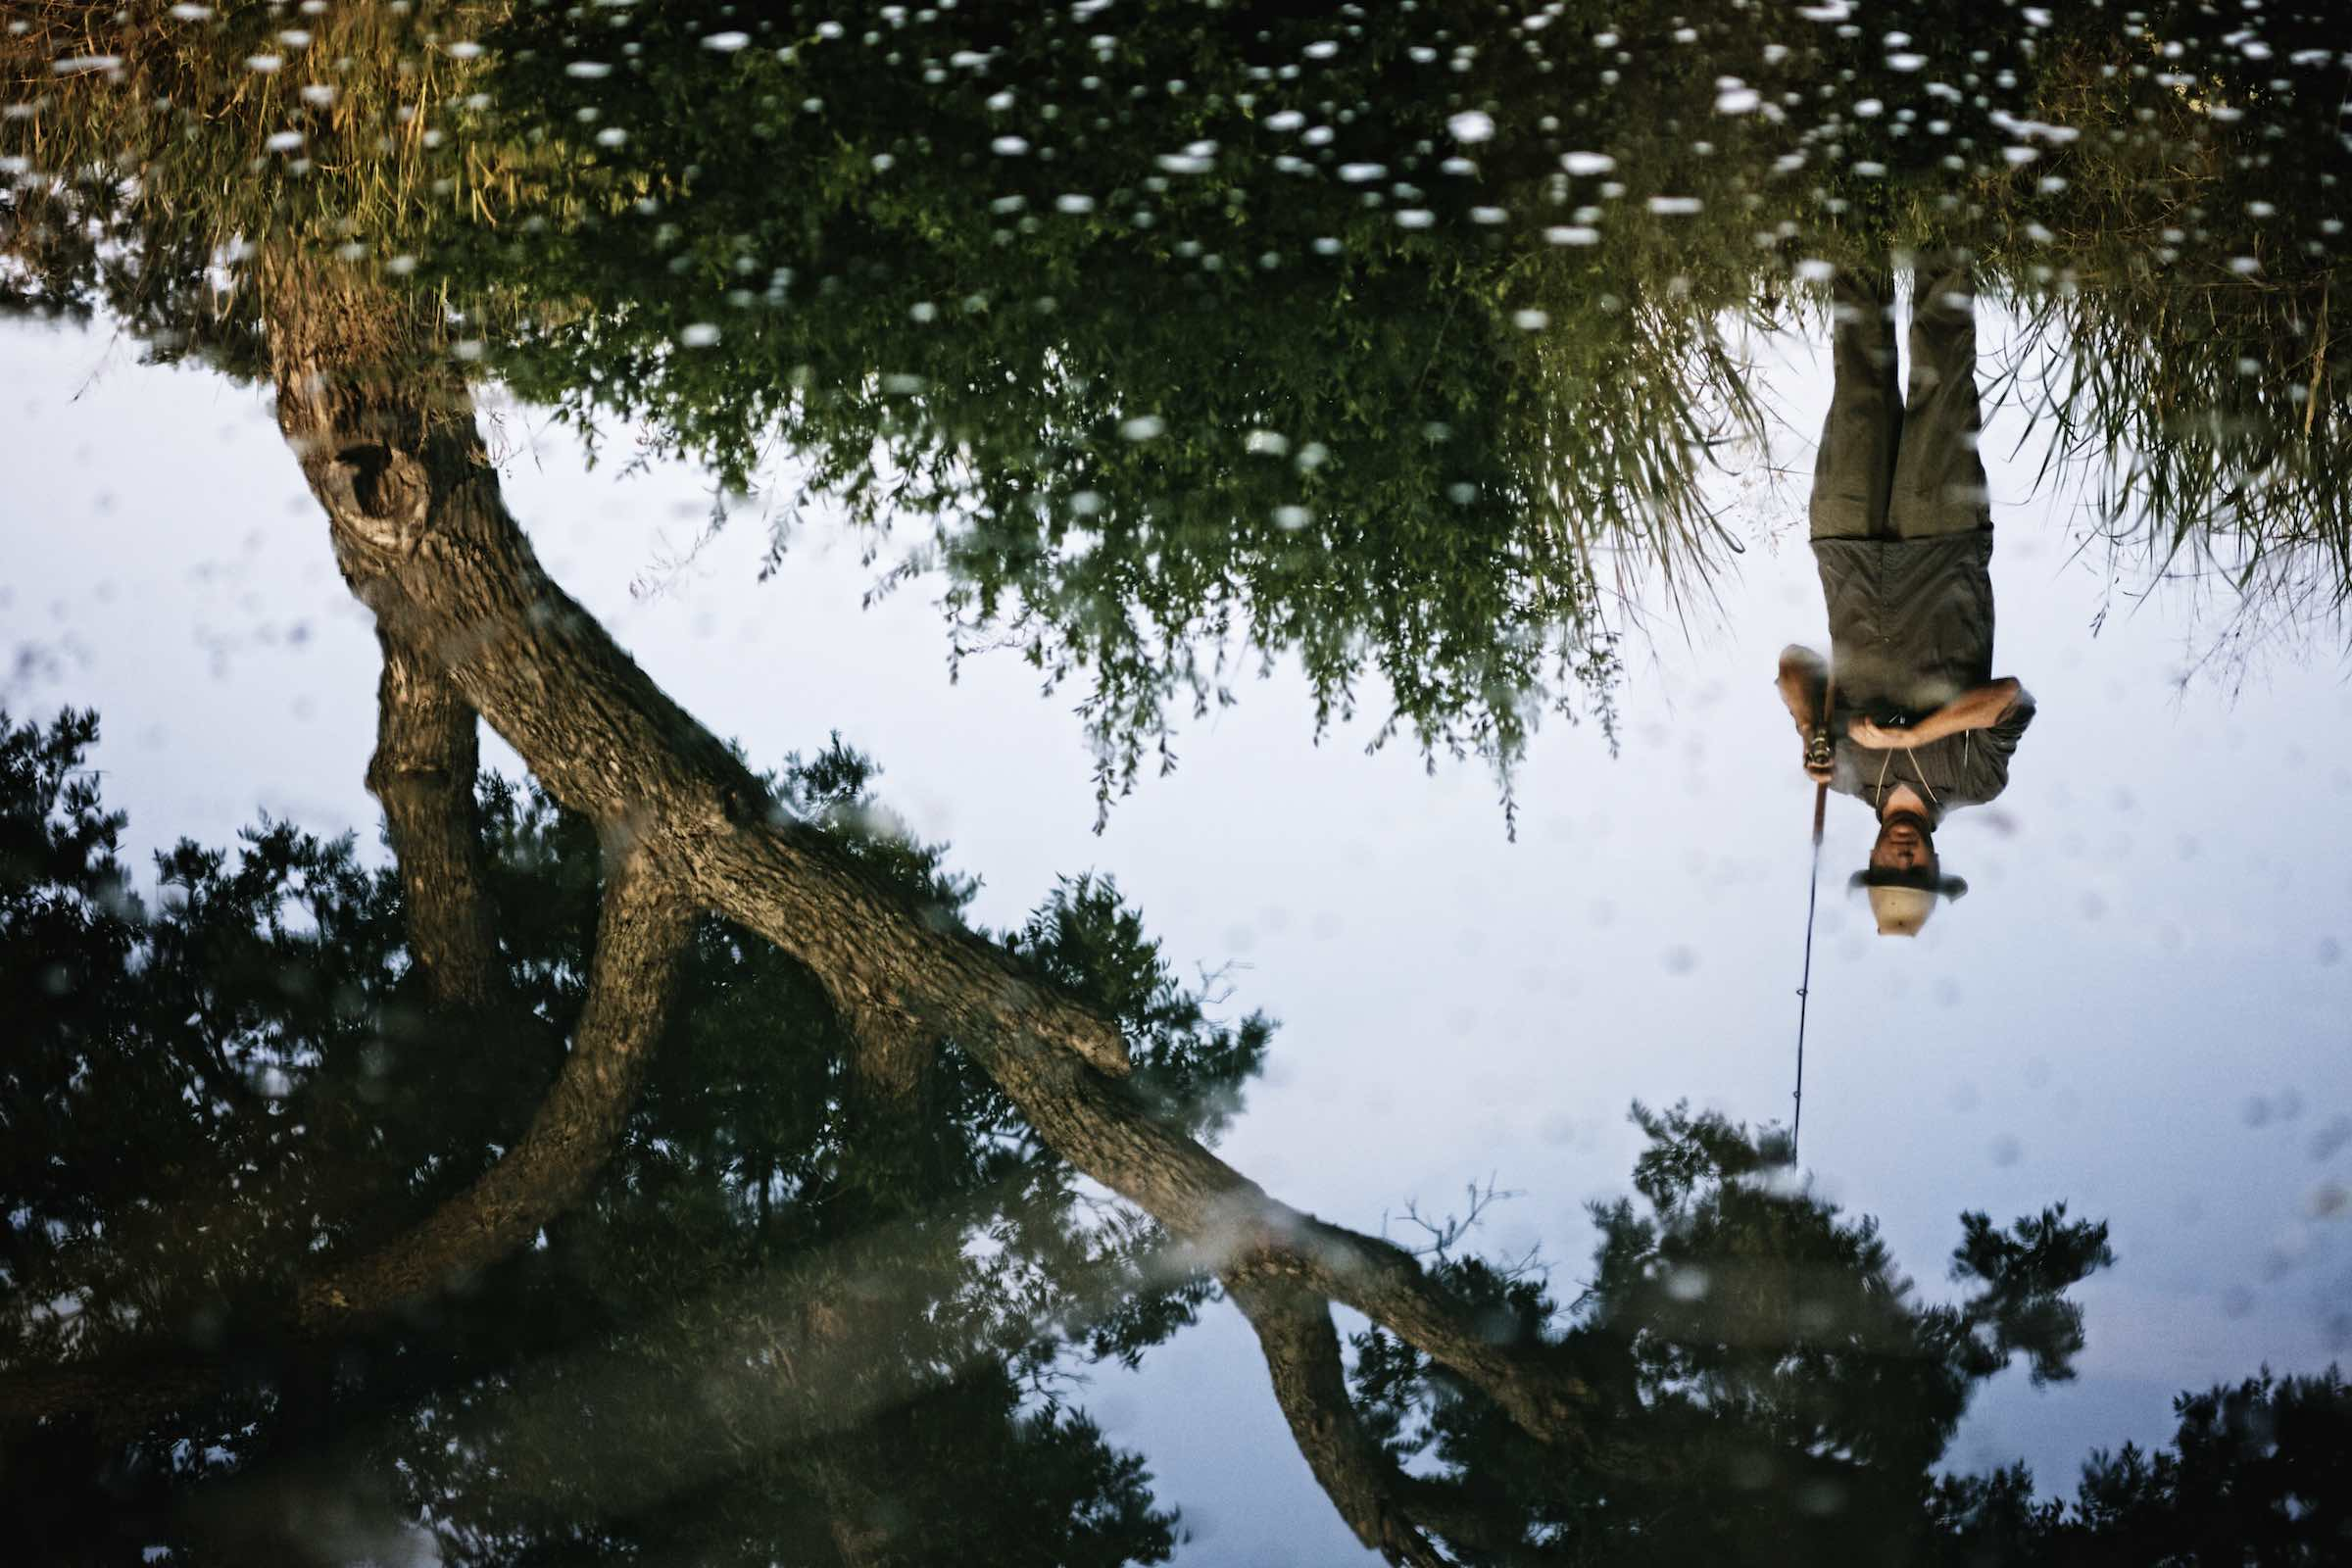 Jody Horton Photography - Inverted reflection of a fisherman on the water.